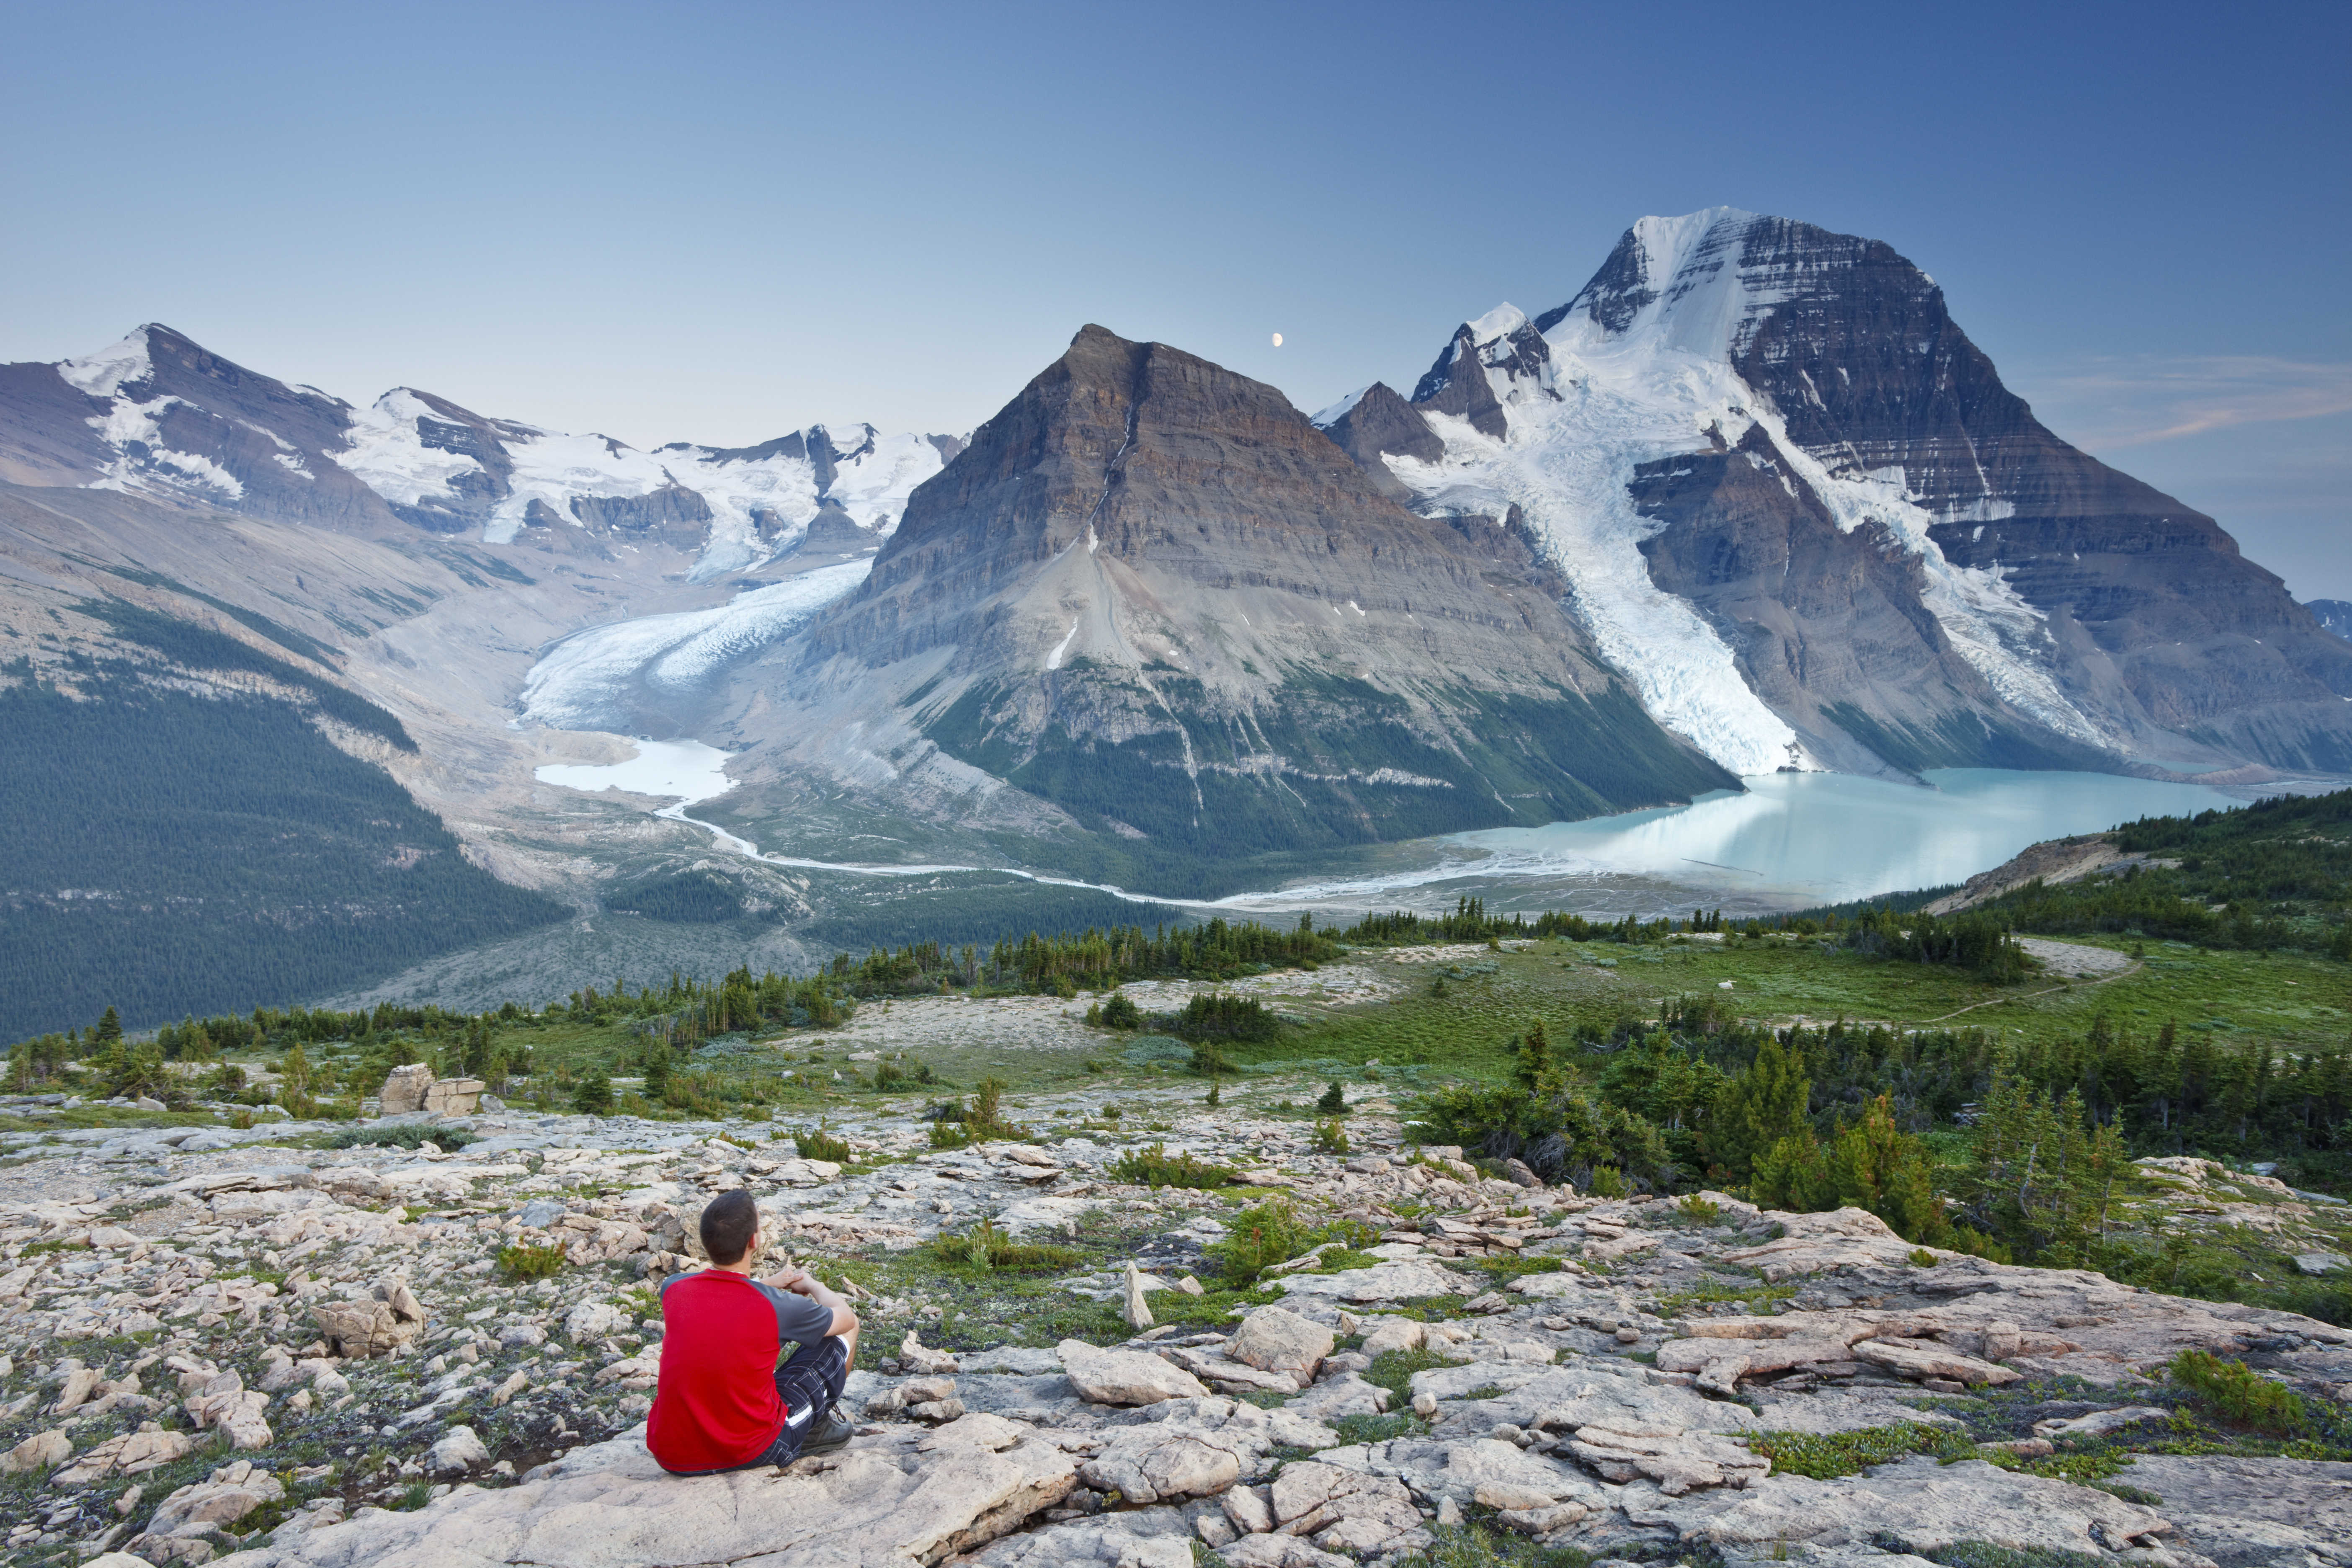 Views of Mount Robson, Canada